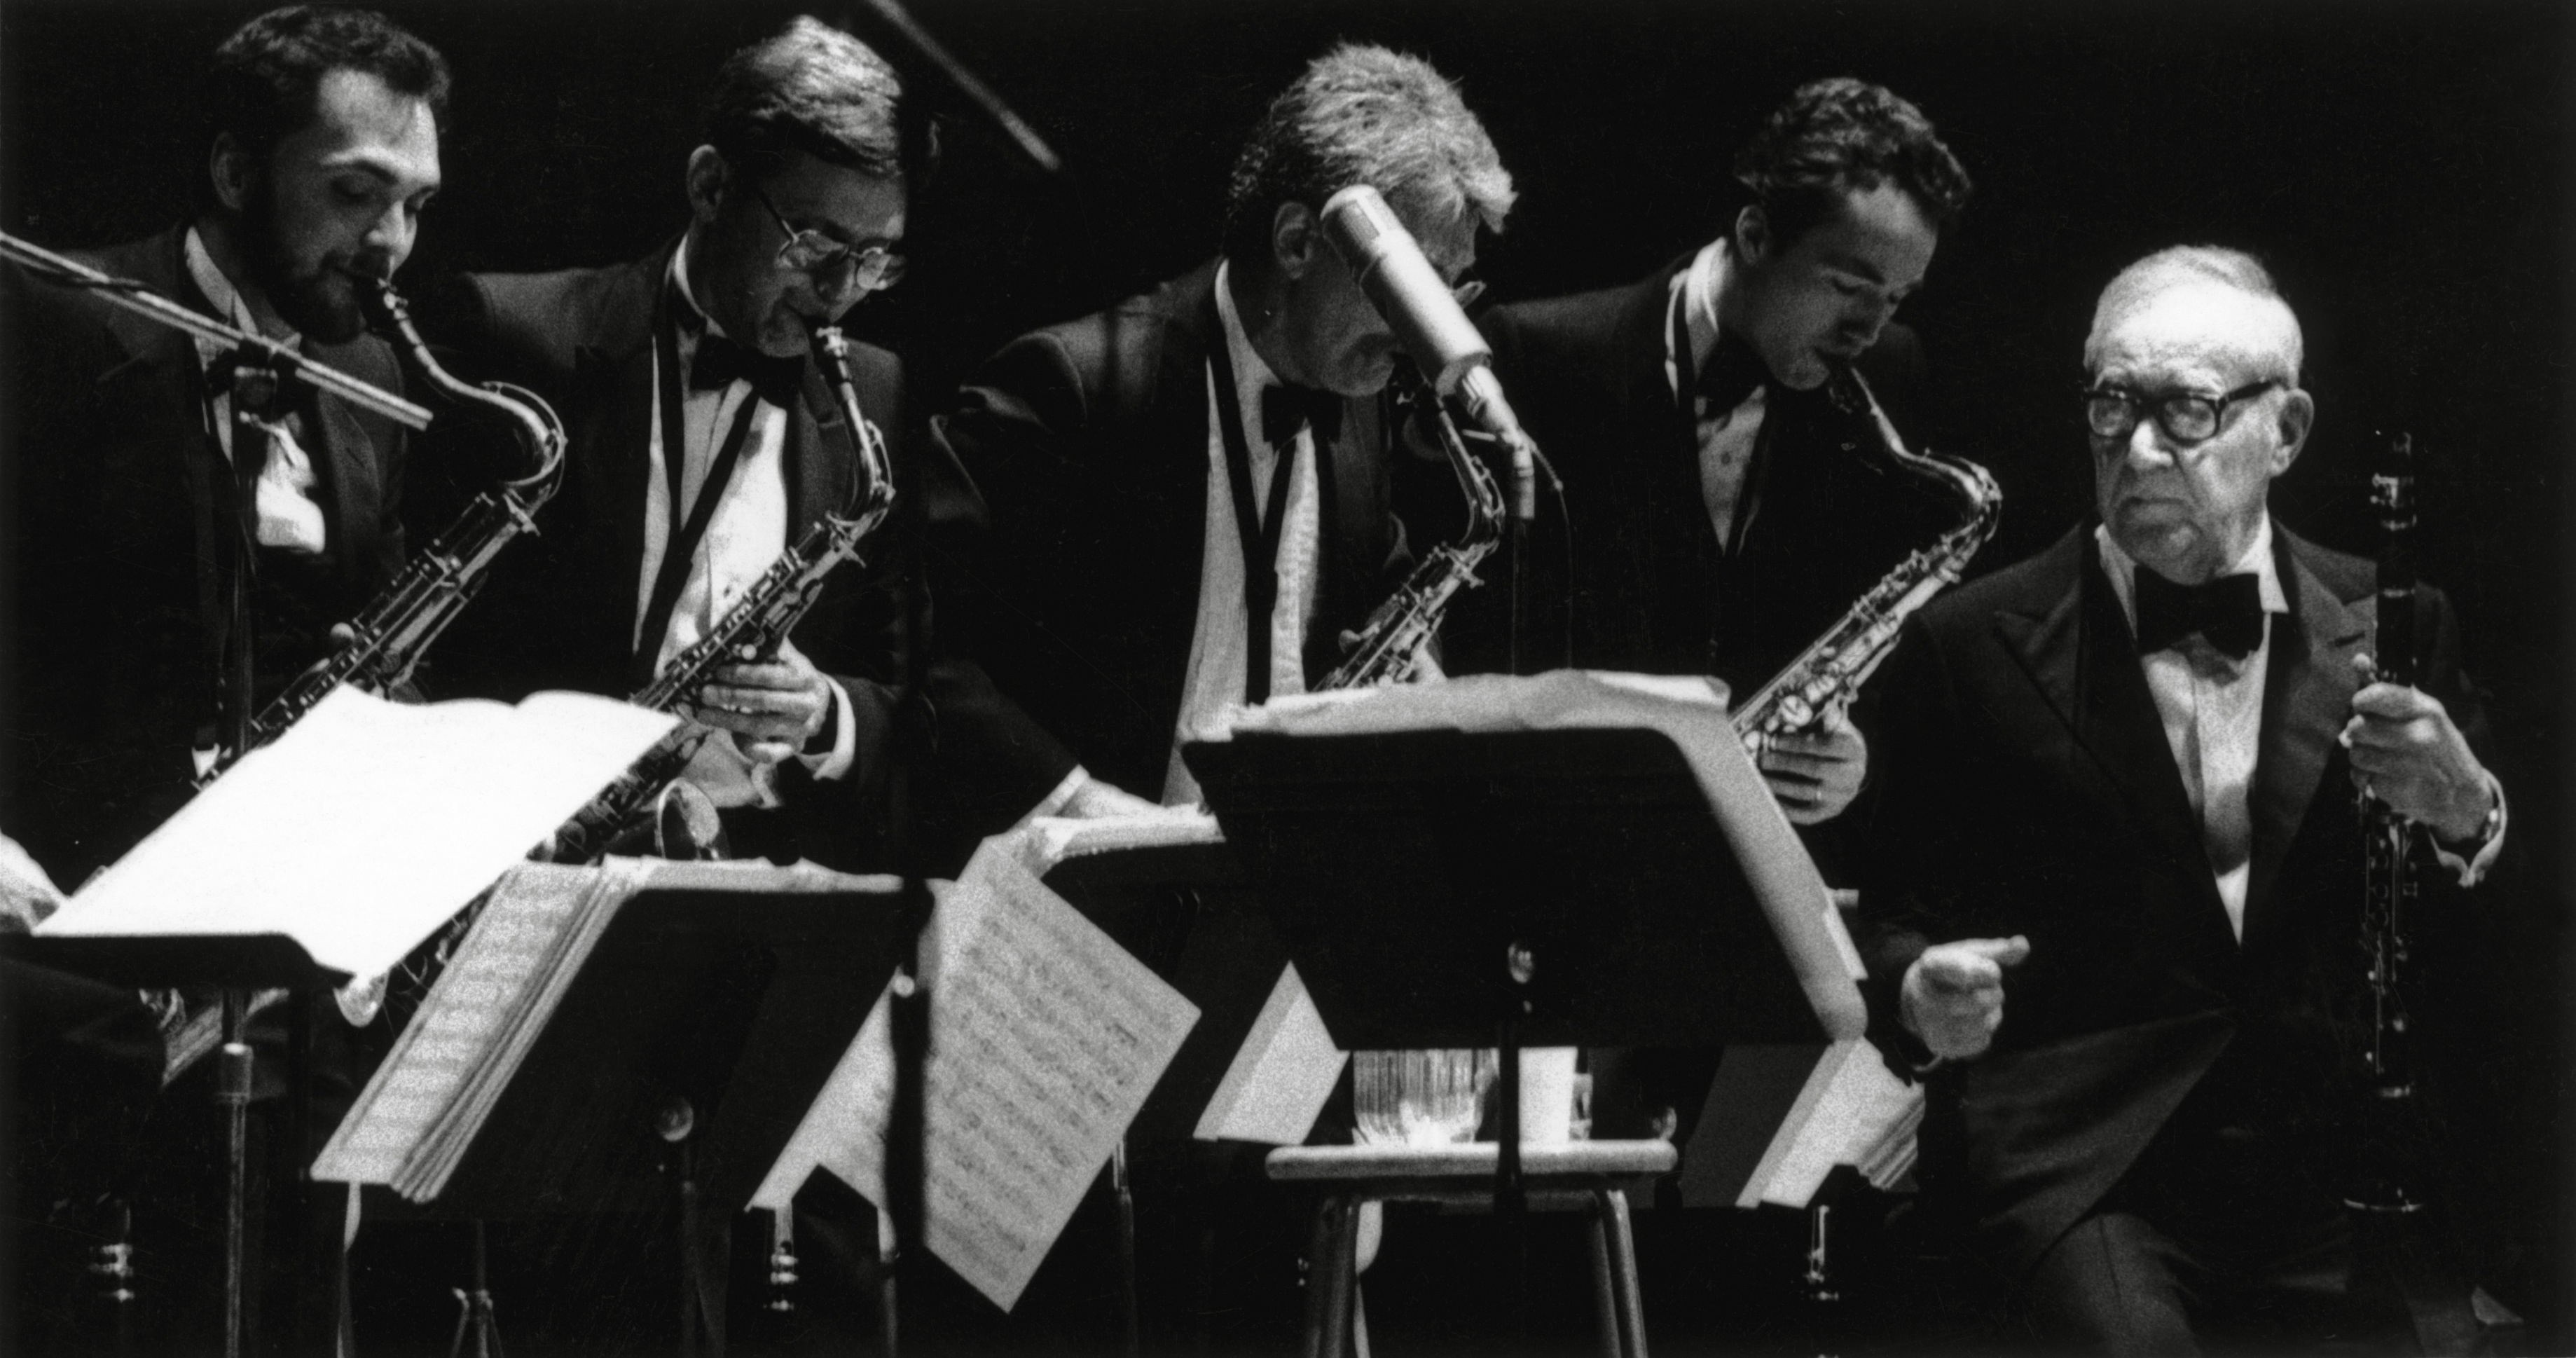 Benny Goodman and his Big Band, March 22, 1986 image